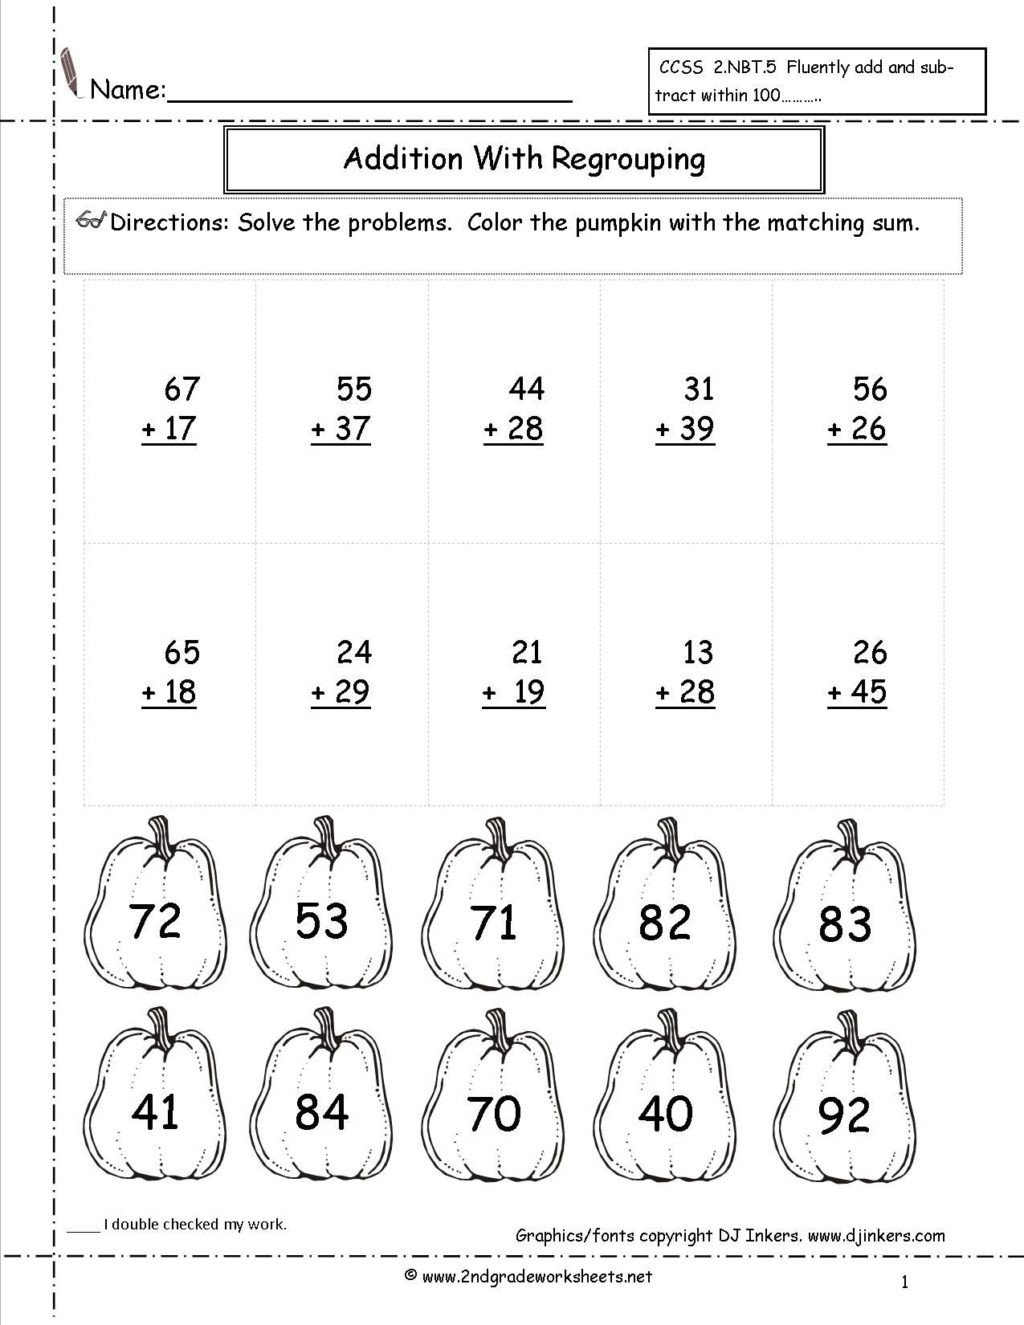 astonishing free kindergarten additionksheets photo inspirations coloring book kindergartenh printable fun digit sheets for second grade 1024x1325